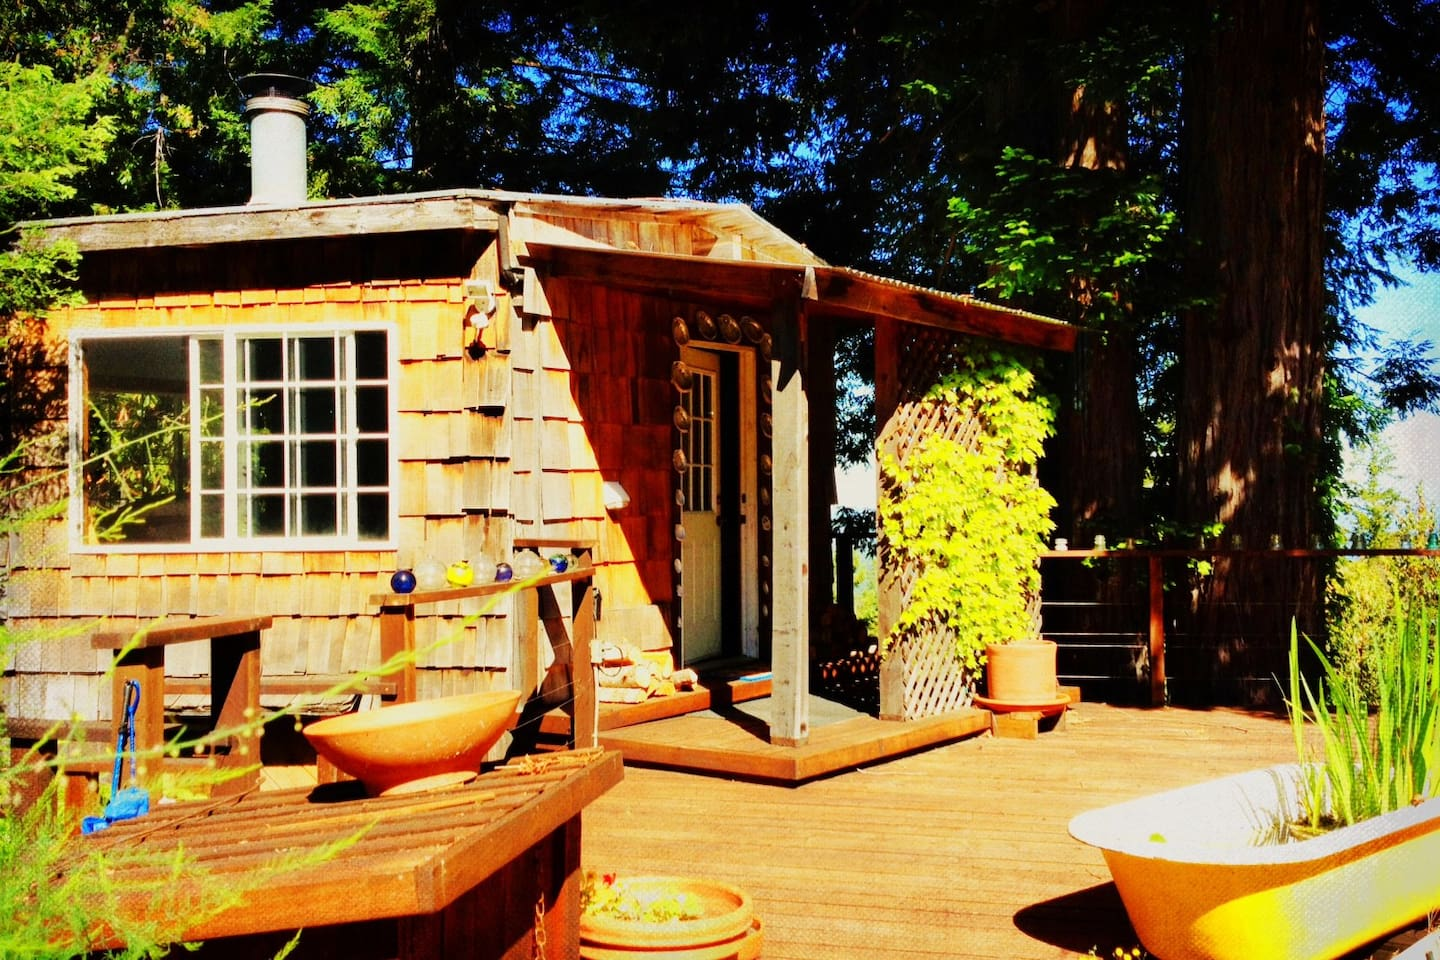 Welcome to Abalone Cottage!   Romantic, rustic charm amidst the redwoods....